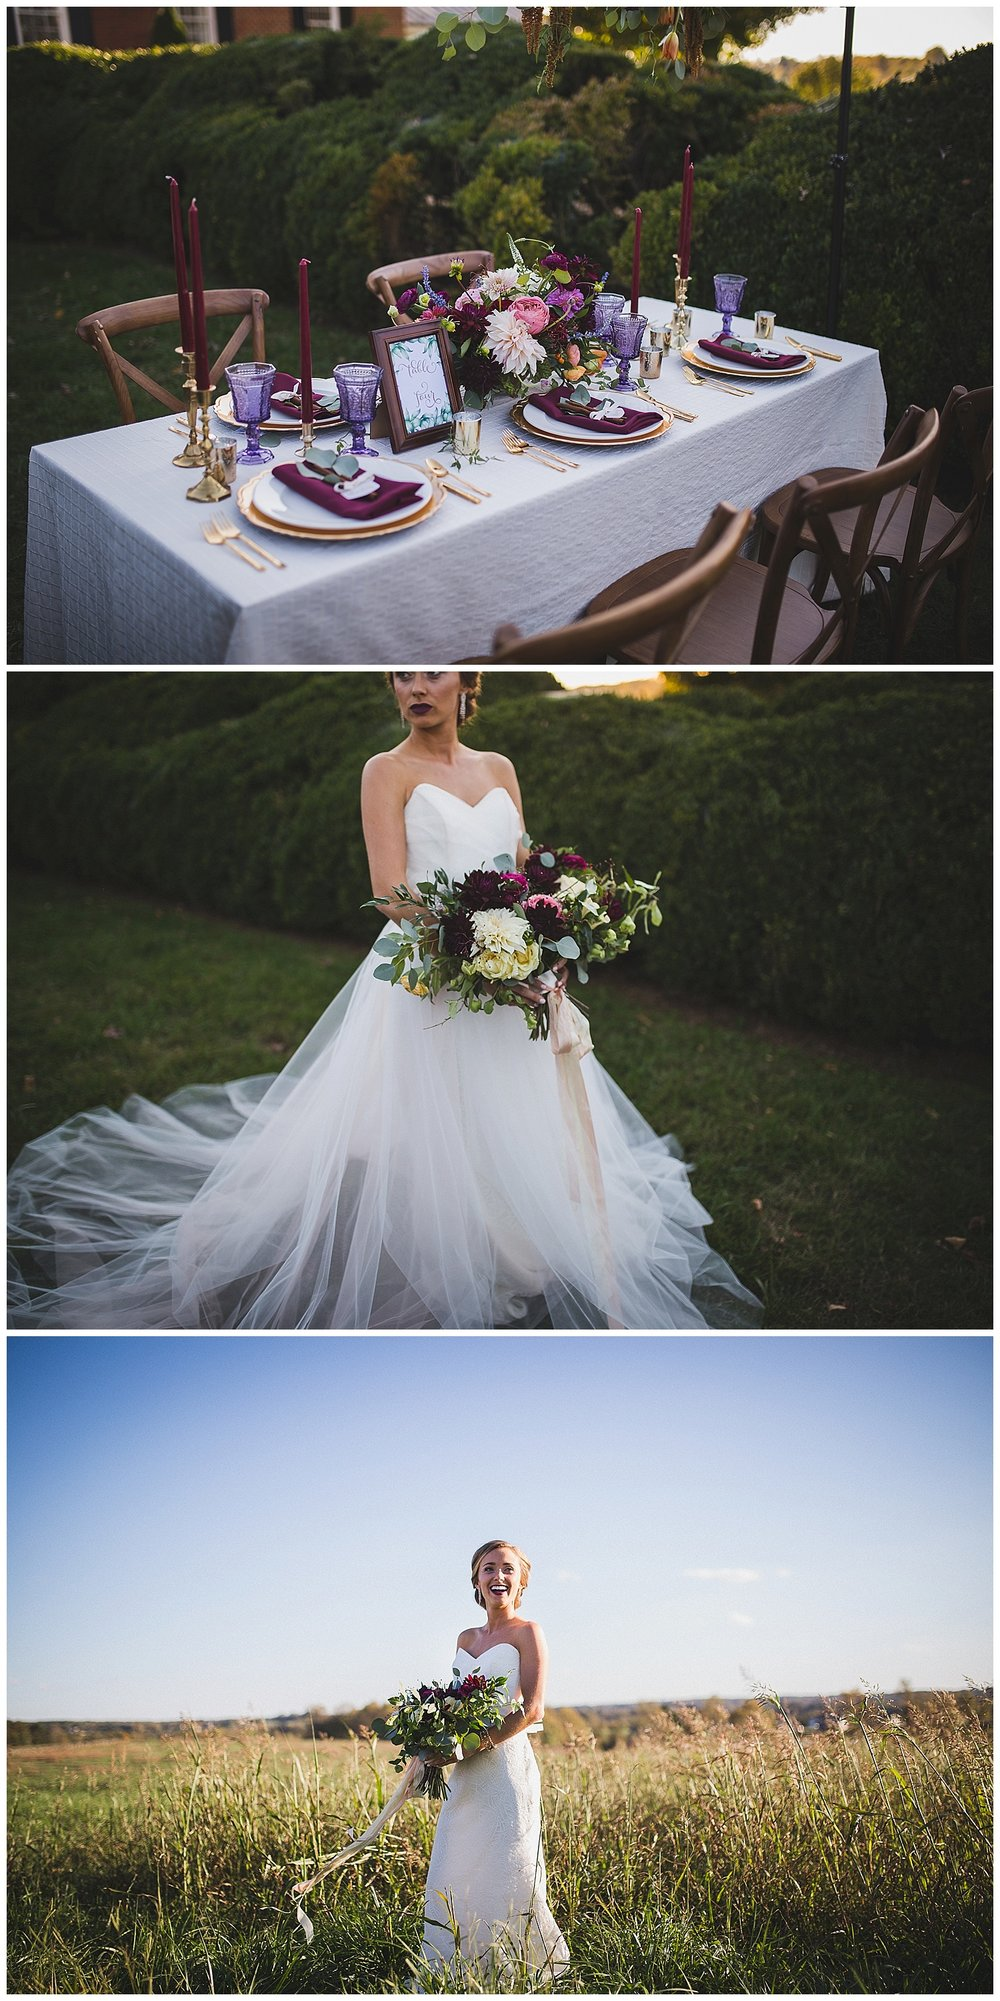 EmilyRogers-southwest-virginia-creative-wedding-photographer_0192.jpg